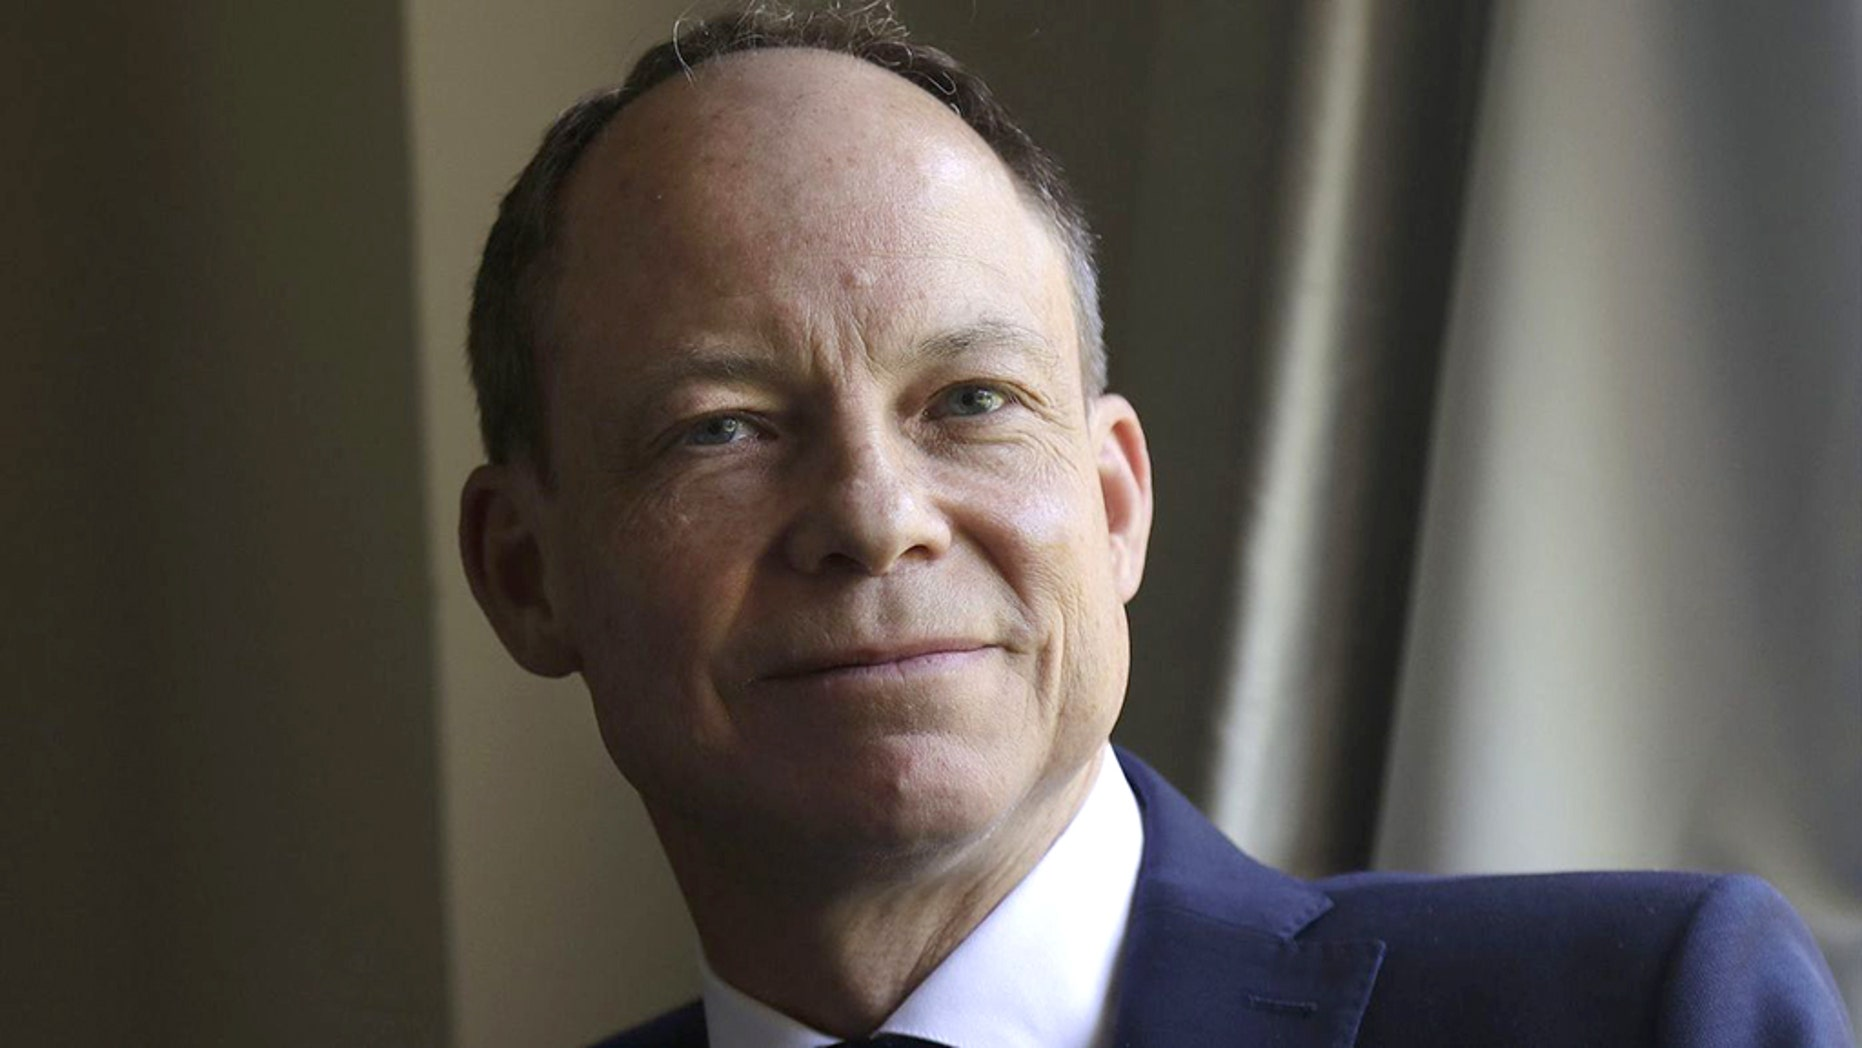 Judge Aaron Persky, who sentenced Brock Turner to six months in jail, is facing a recall vote on Tuesday in California.